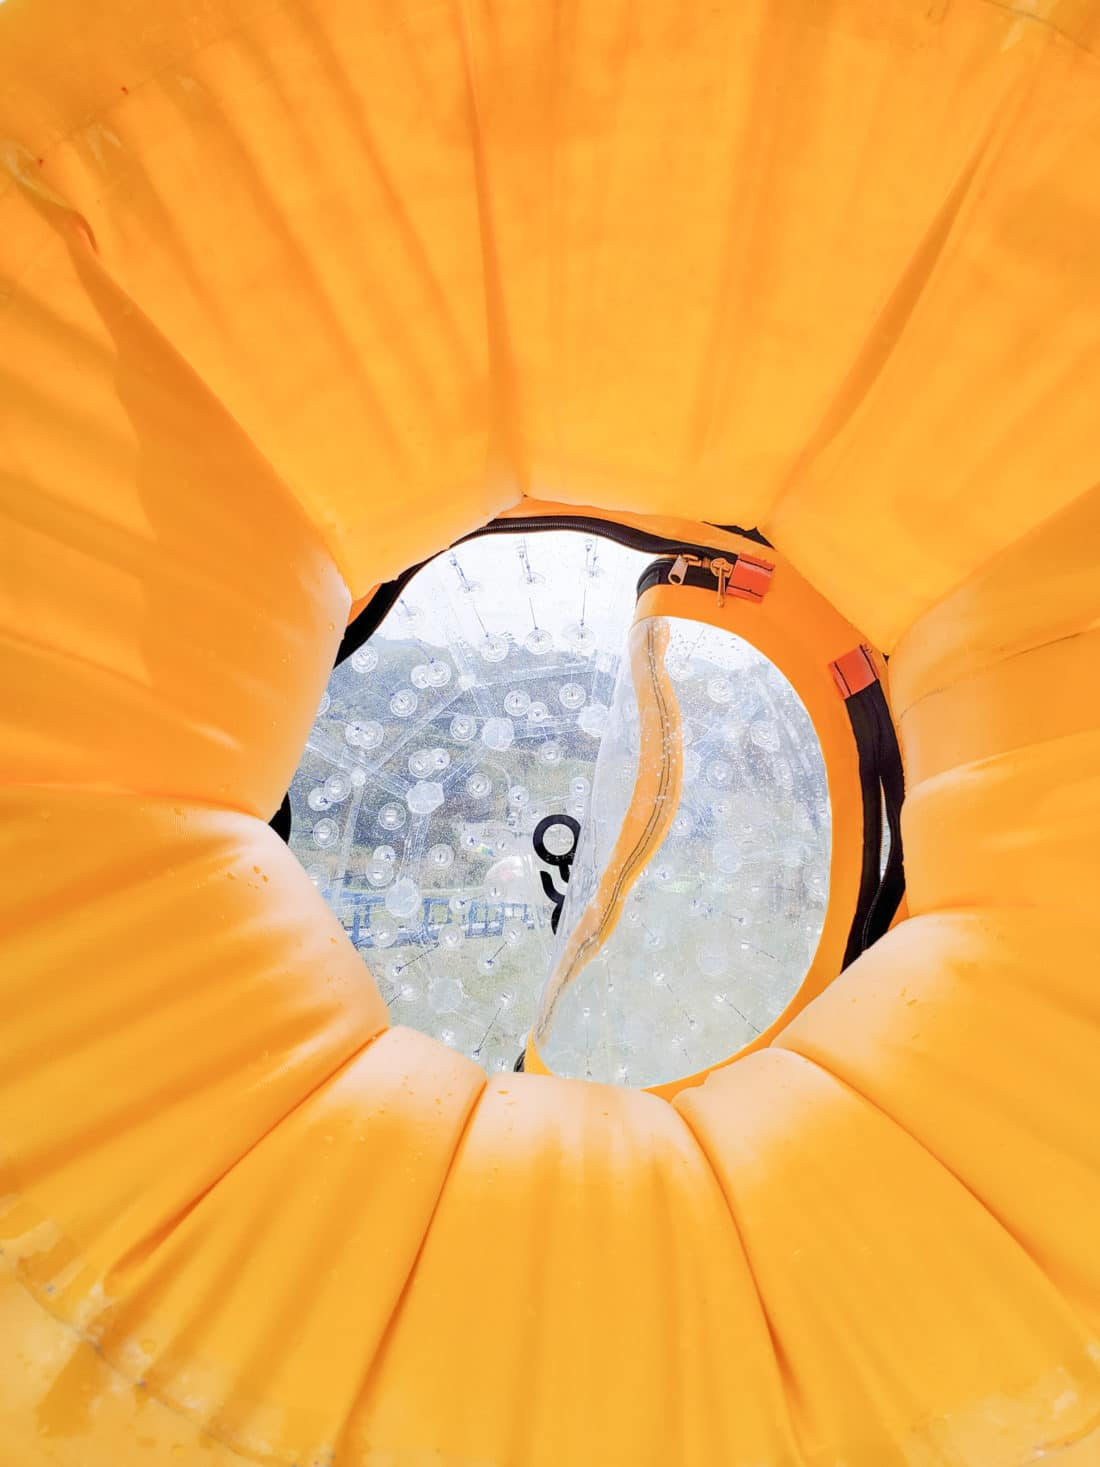 Outdoor Gravity Park Ogo Flap. Outdoor Gravity Park is an amazing adventure destination in Pigeon Forge, Tennessee at the foothills of the Smoky Mountains featuring zorbing, an attraction straight out of New Zealand.